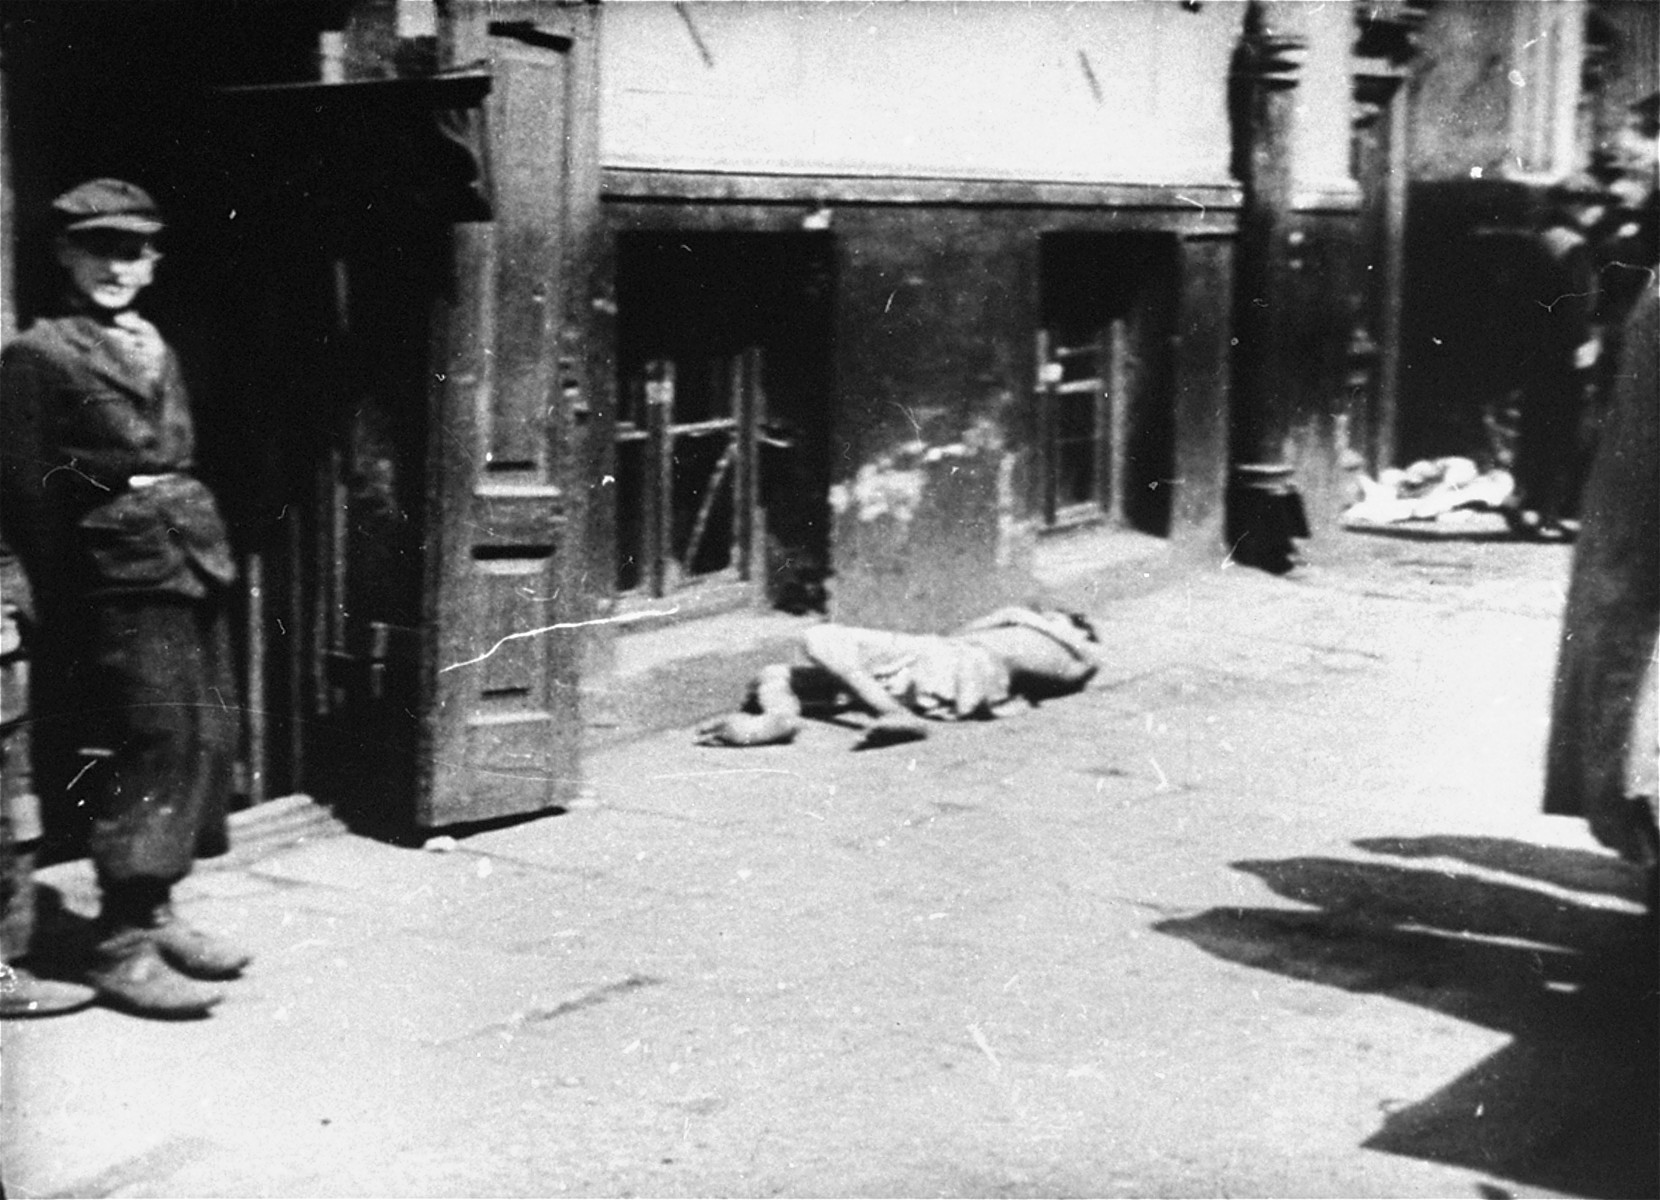 A body on the street in the Warsaw ghetto.